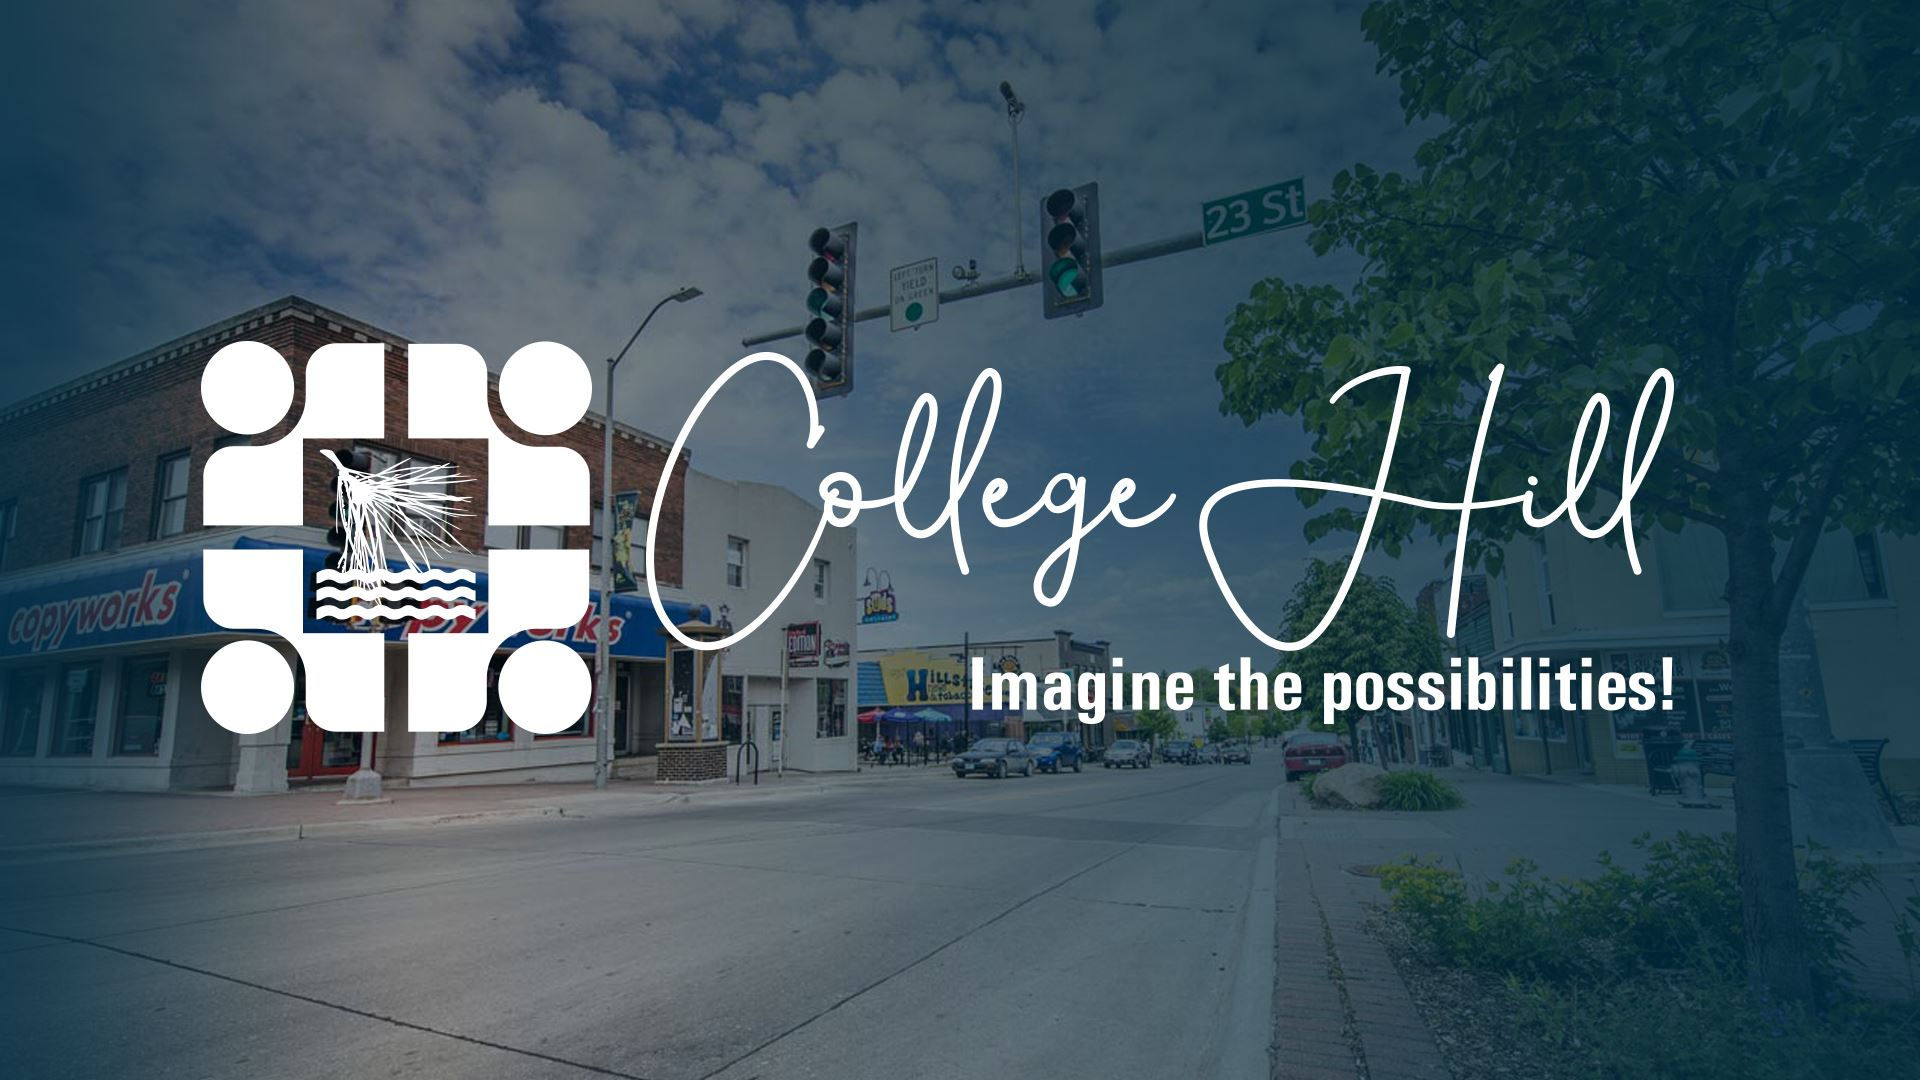 Imagine College Hill